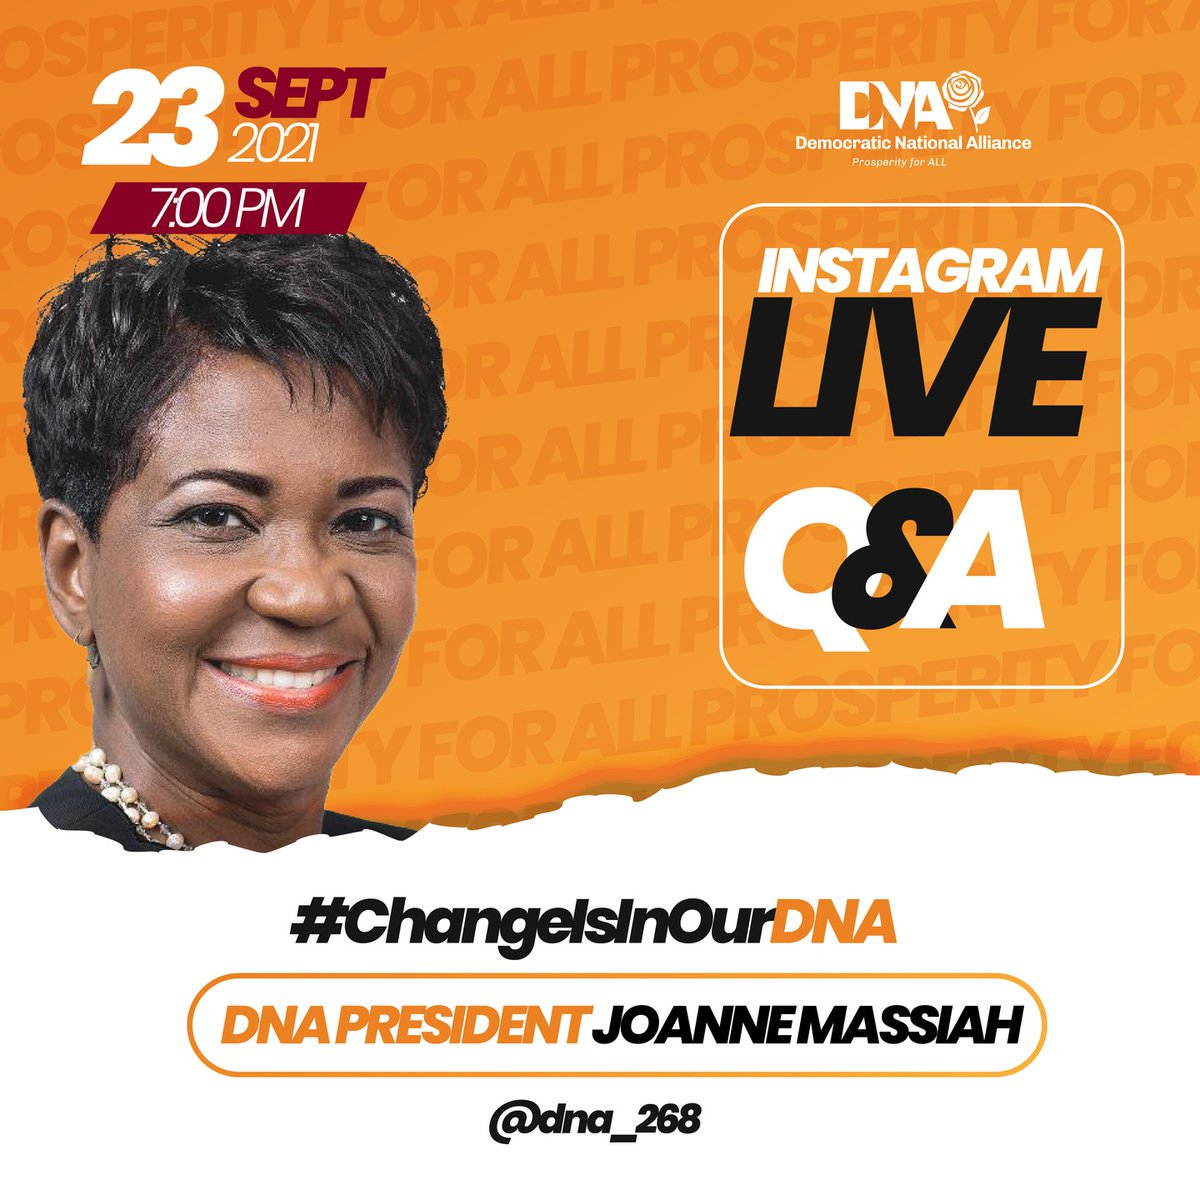 You have questions and we have answers!   Join DNA President Joanne Massiah for an Instagram Live Q&A Session on Thursday 23 September at 7 pm! Learn about the DNA, what we stand for and our plans for Prosperity for All in Antigua and Barbuda.  #ChangeIsInMyDNA #ProsperityForAll